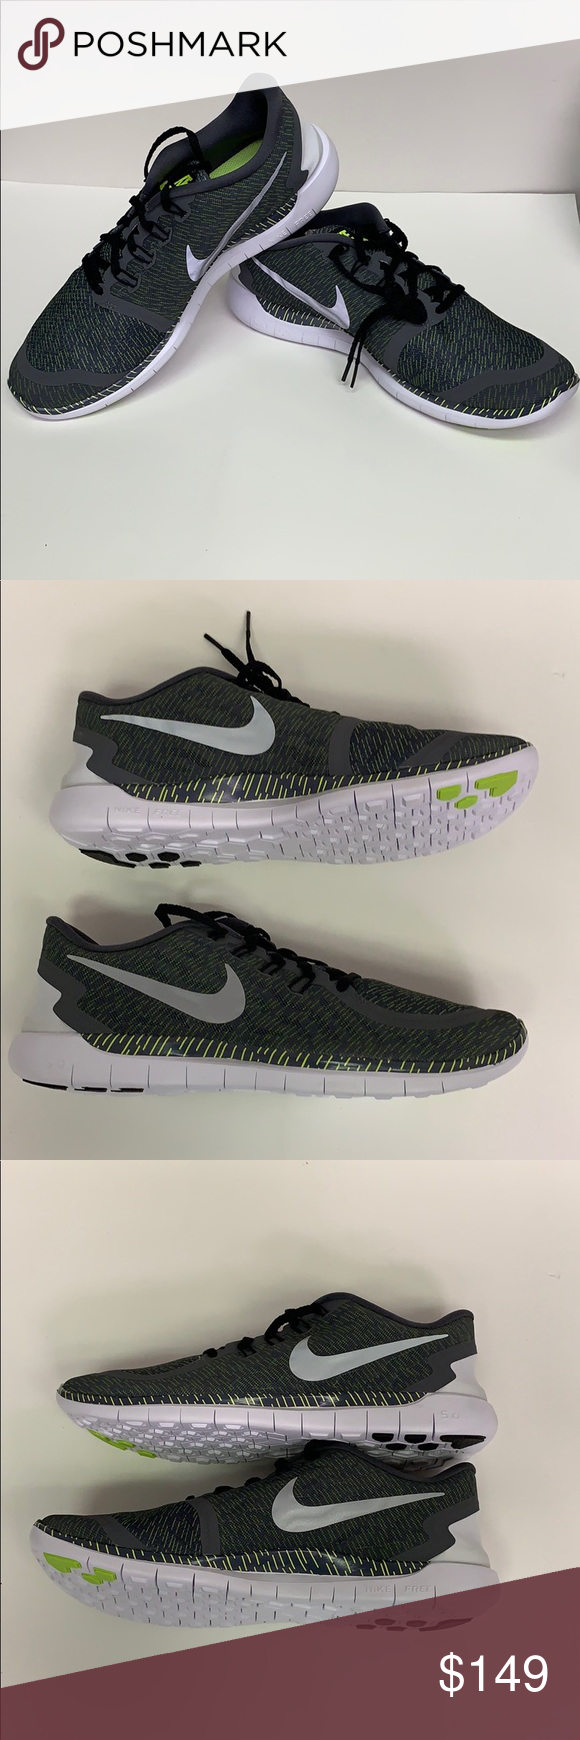 the best attitude 1189b e9431 Nike Mens Free 5.0 Print Dark Grey Rflct Size 12 Nike Mens Free 5.0 Print